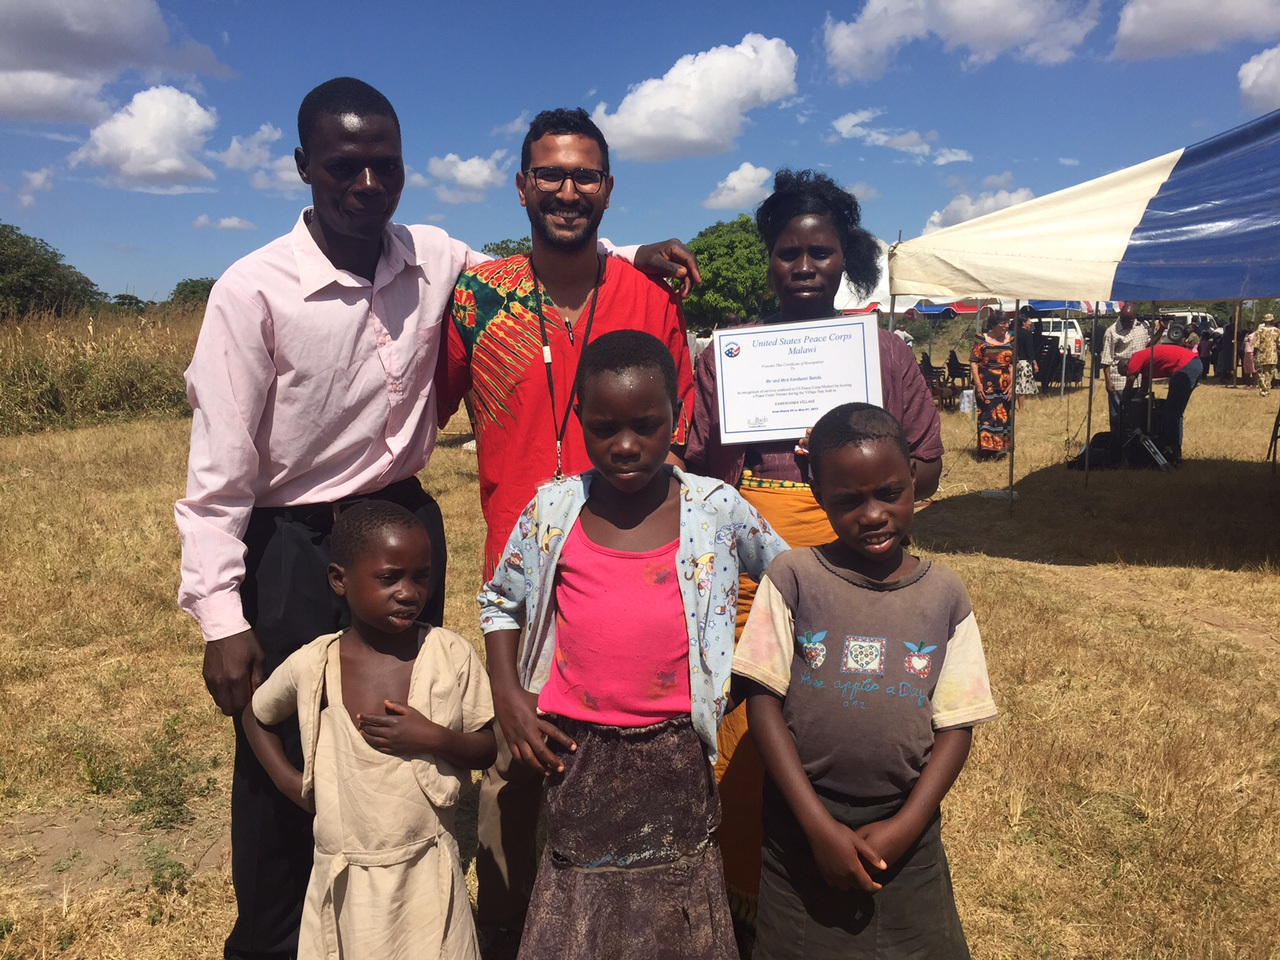 Peace Corps volunteer and MPA student Samir El-Gindi builds a community center in Malawi